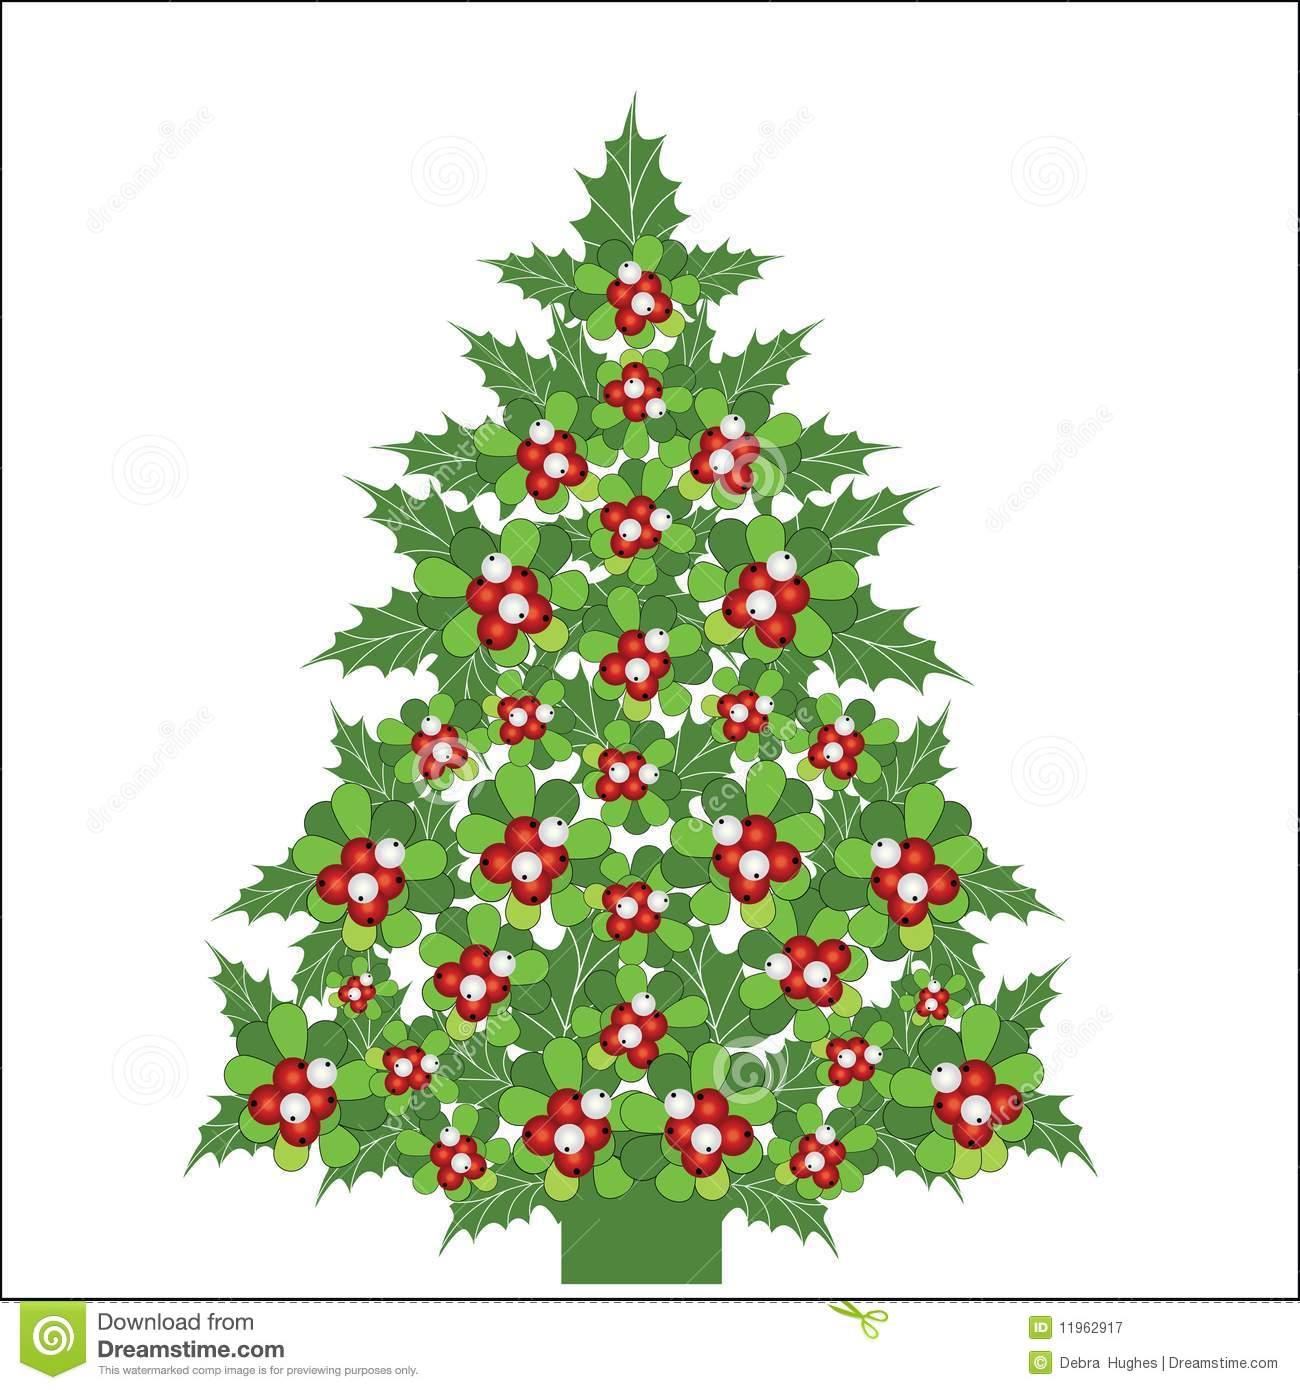 Christmas Holly Tree Part - 23: Royalty-Free Stock Photo. Download Christmas Tree ...